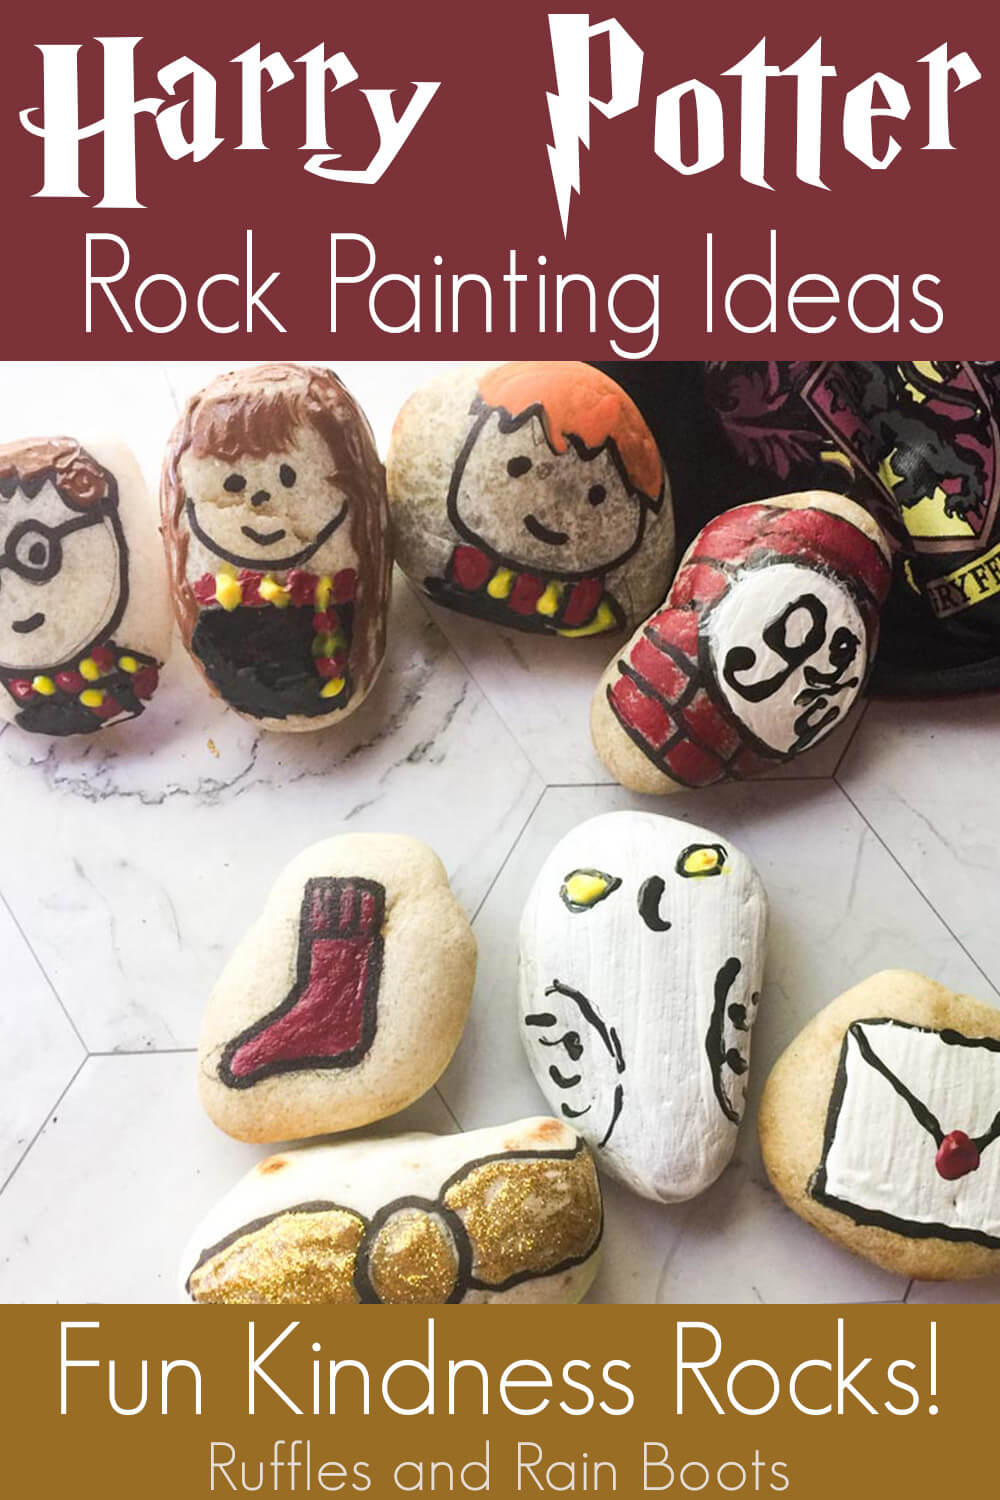 harry potter painted rock ideas on a white background with text which reads harry potter rock painting ideas fun kindness rocks!